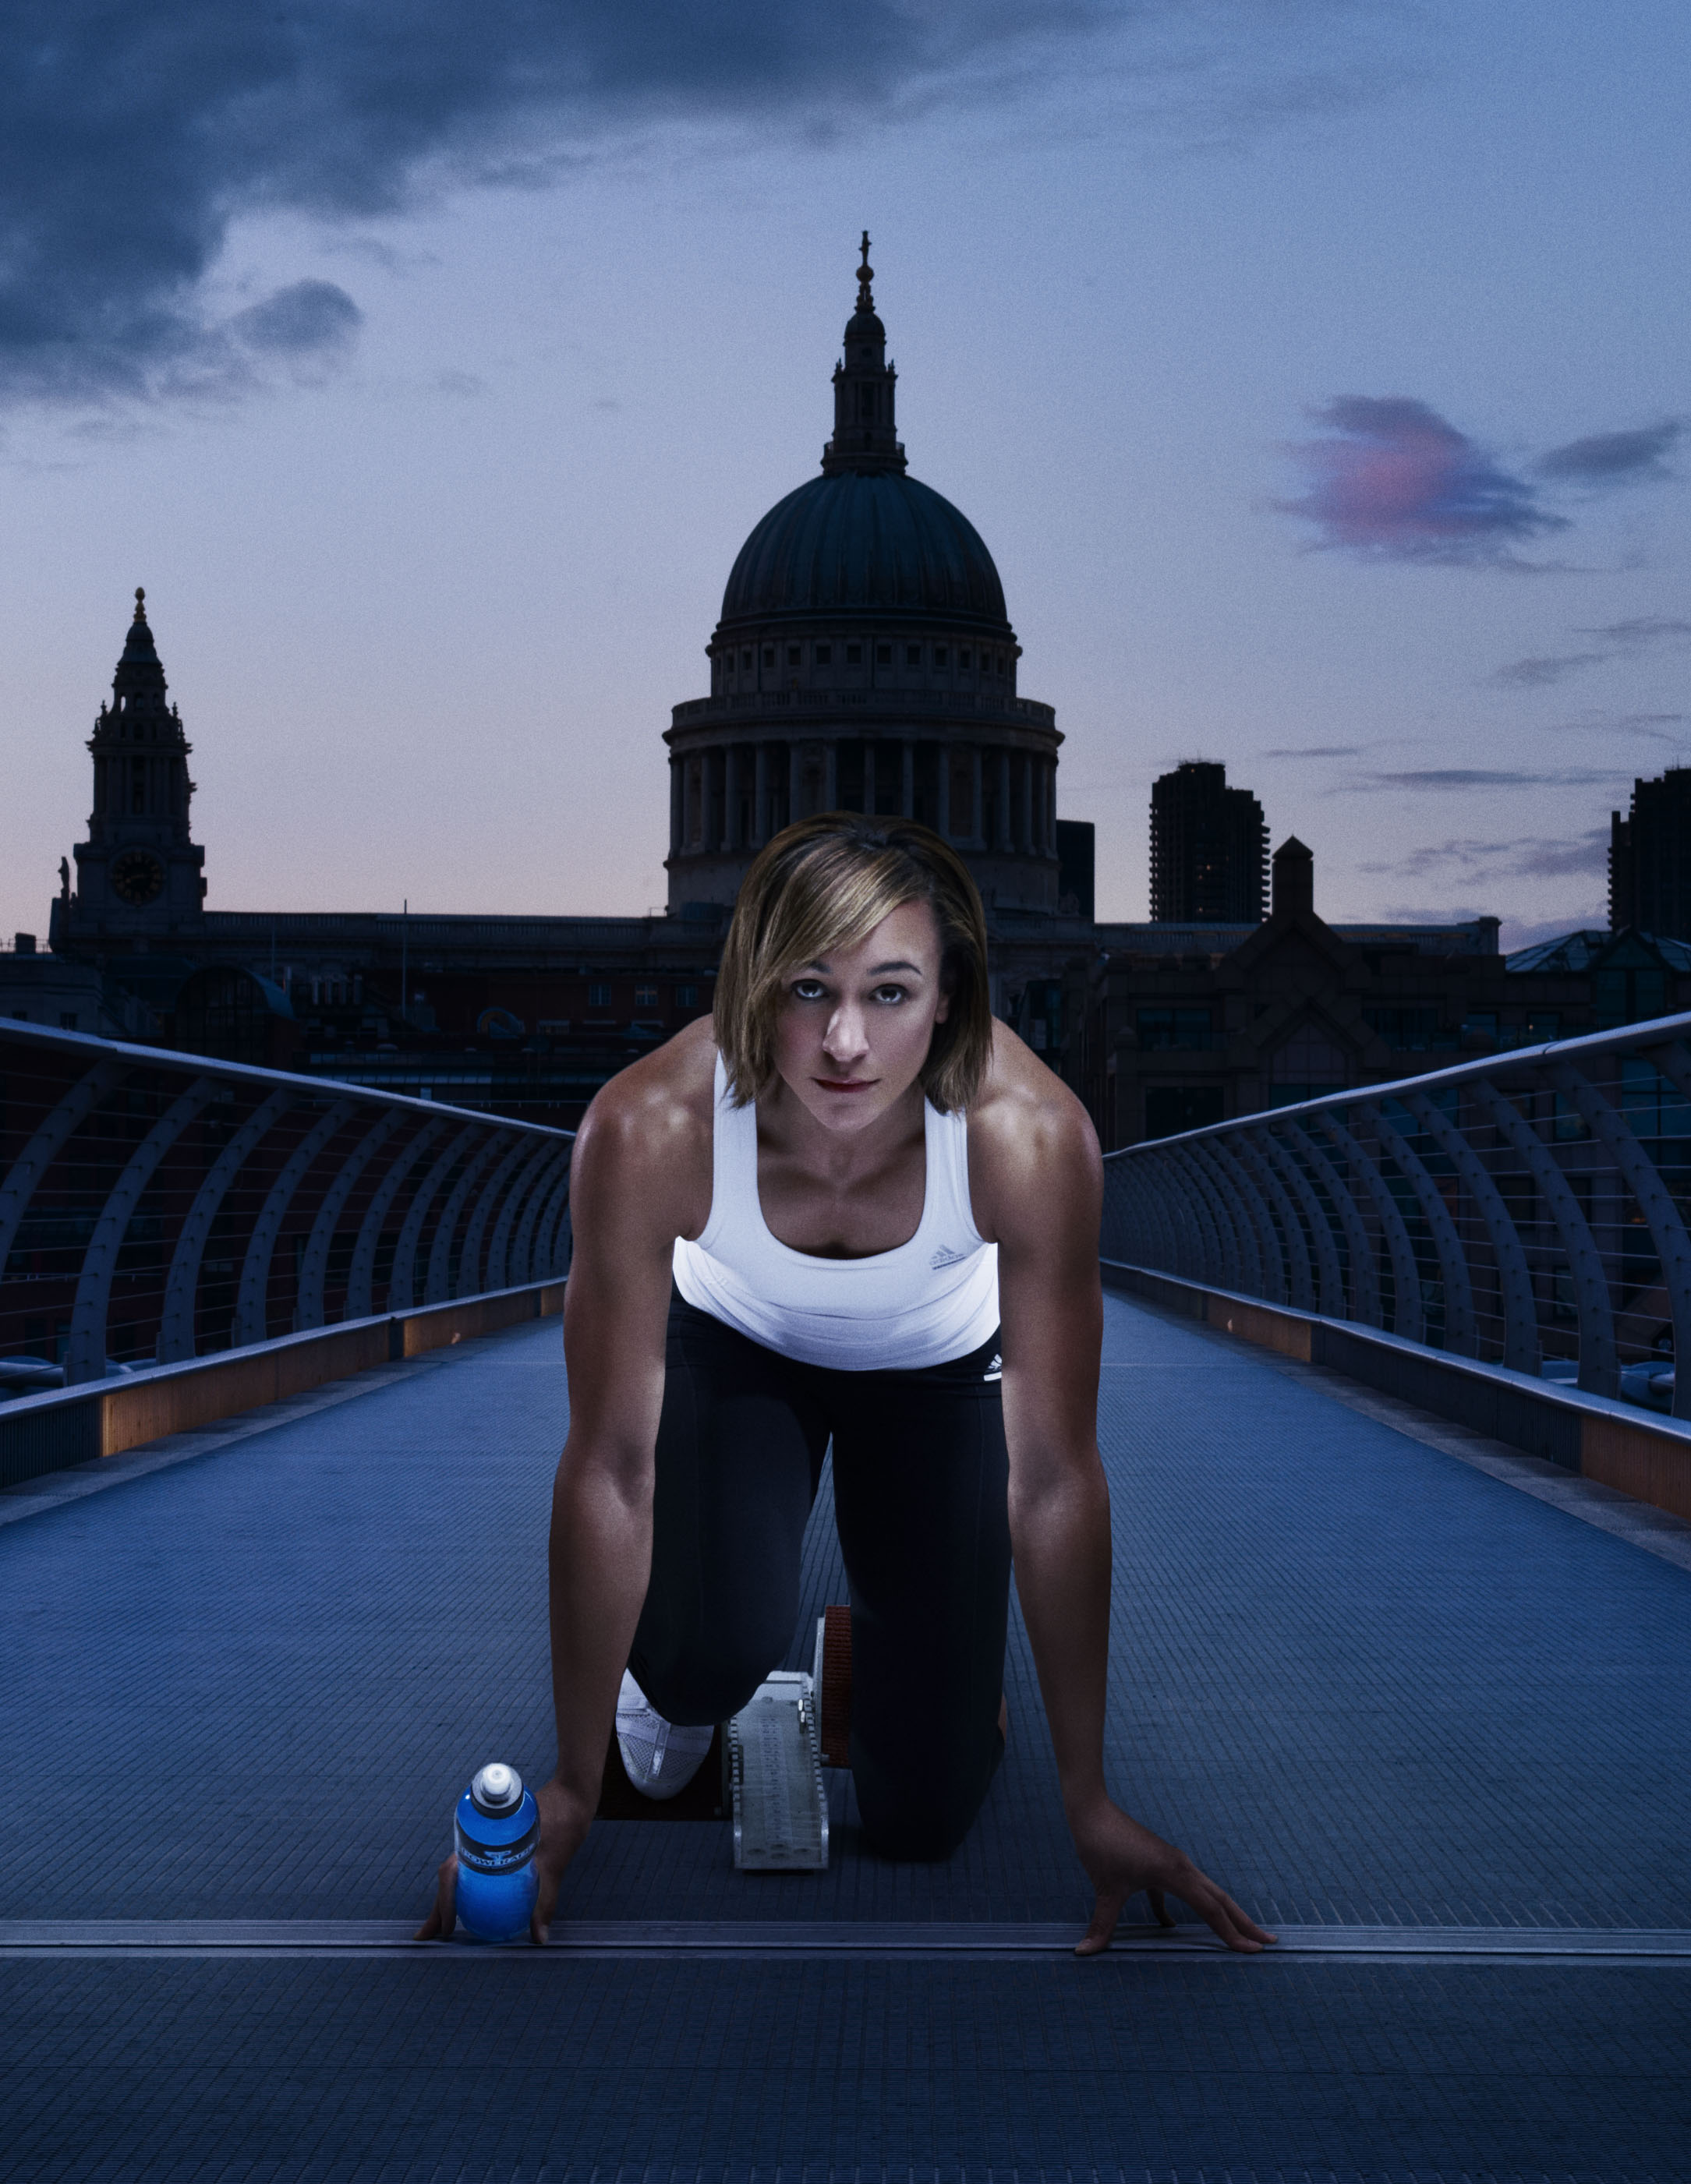 Dame Jessica Ennis-Hill for Powerade - Golden Medallist and Olympian AthleteHair and Makeup by Zuzana RitchiePhoto: Graham Hugheswww.gray-hughes.com